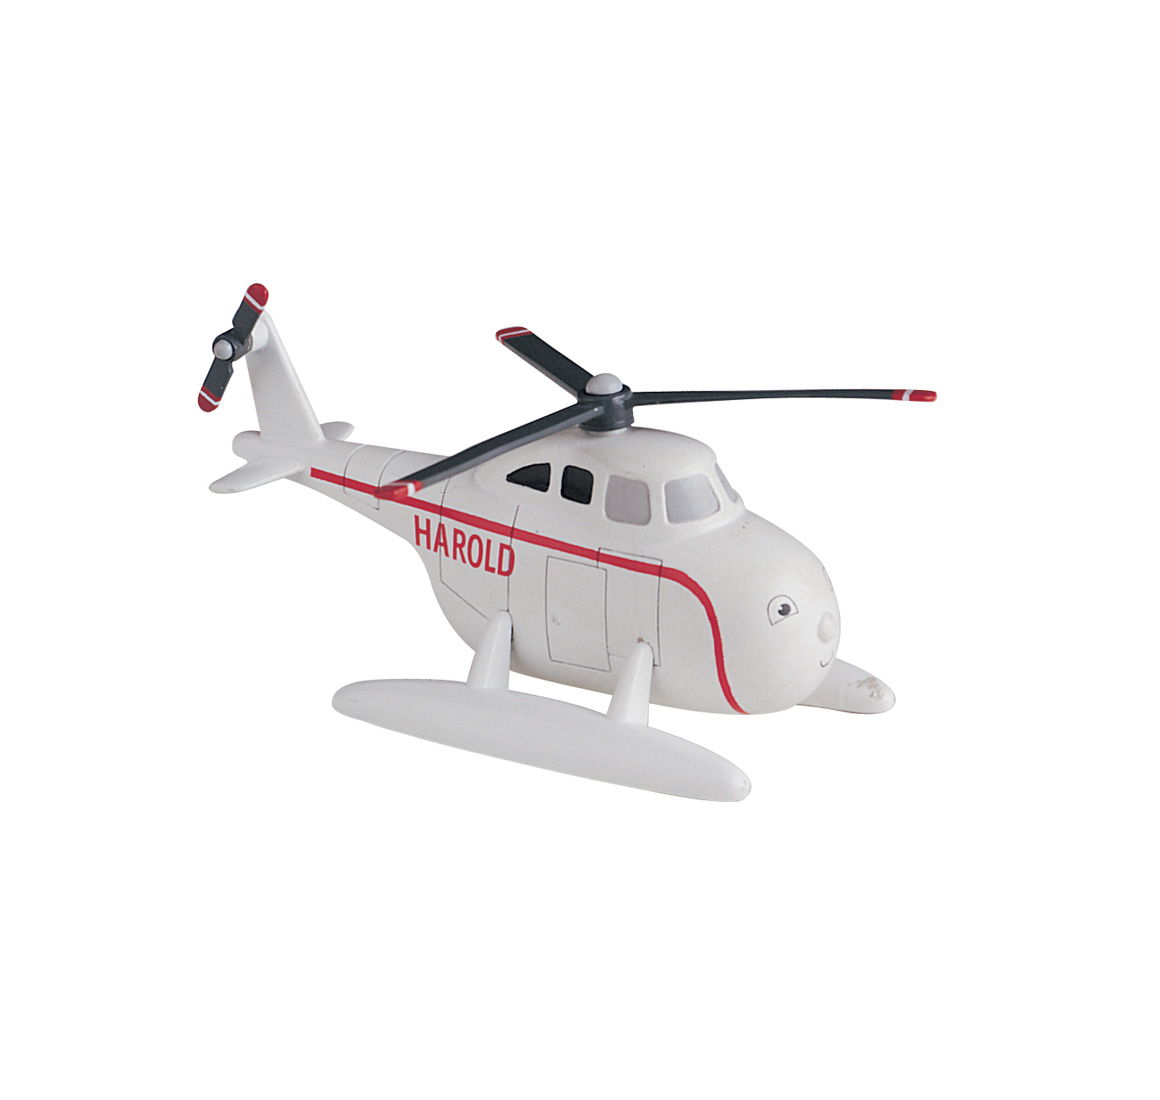 bachmann_thomas_friends_harold_helicopter